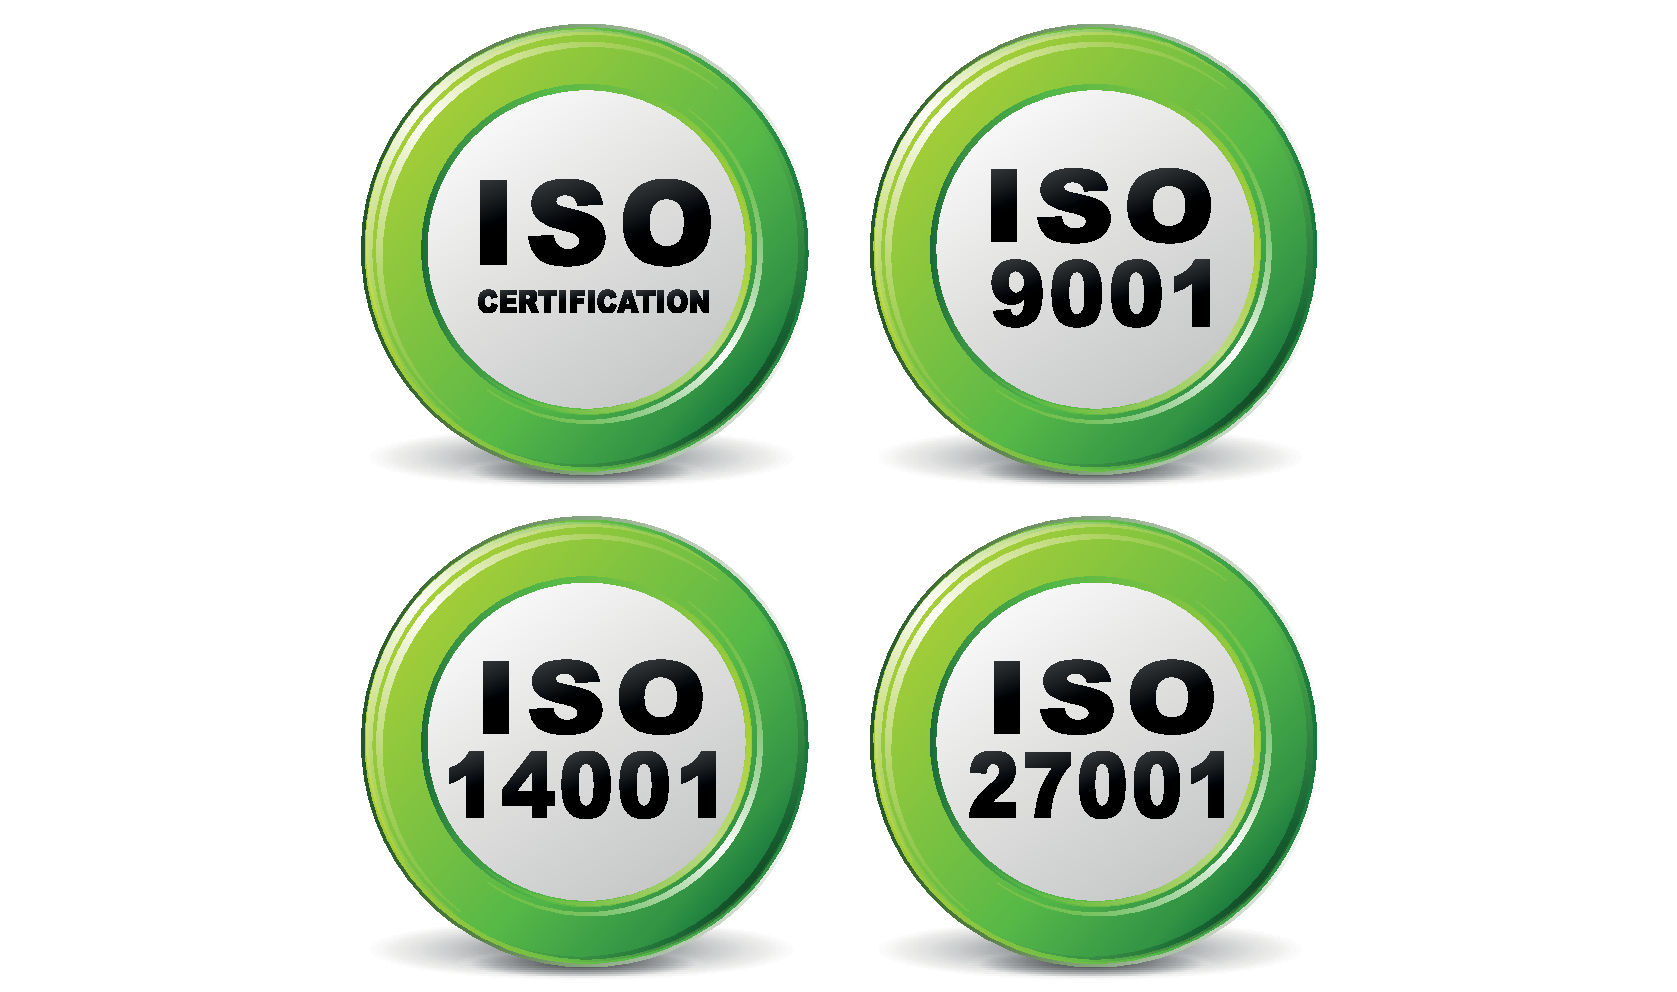 Our ISO credentials